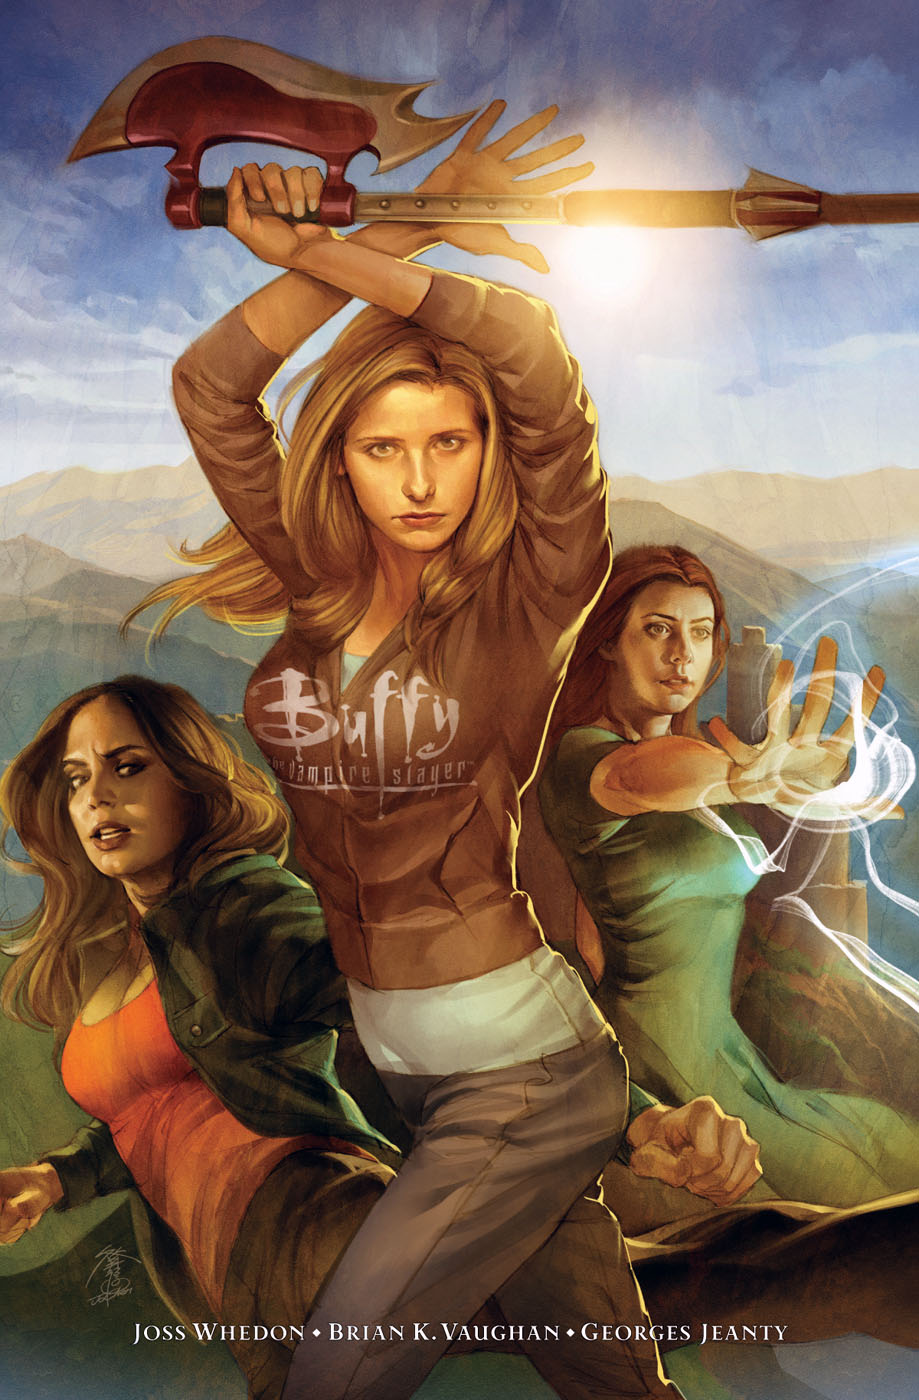 Buffy Season 8 Library Edition